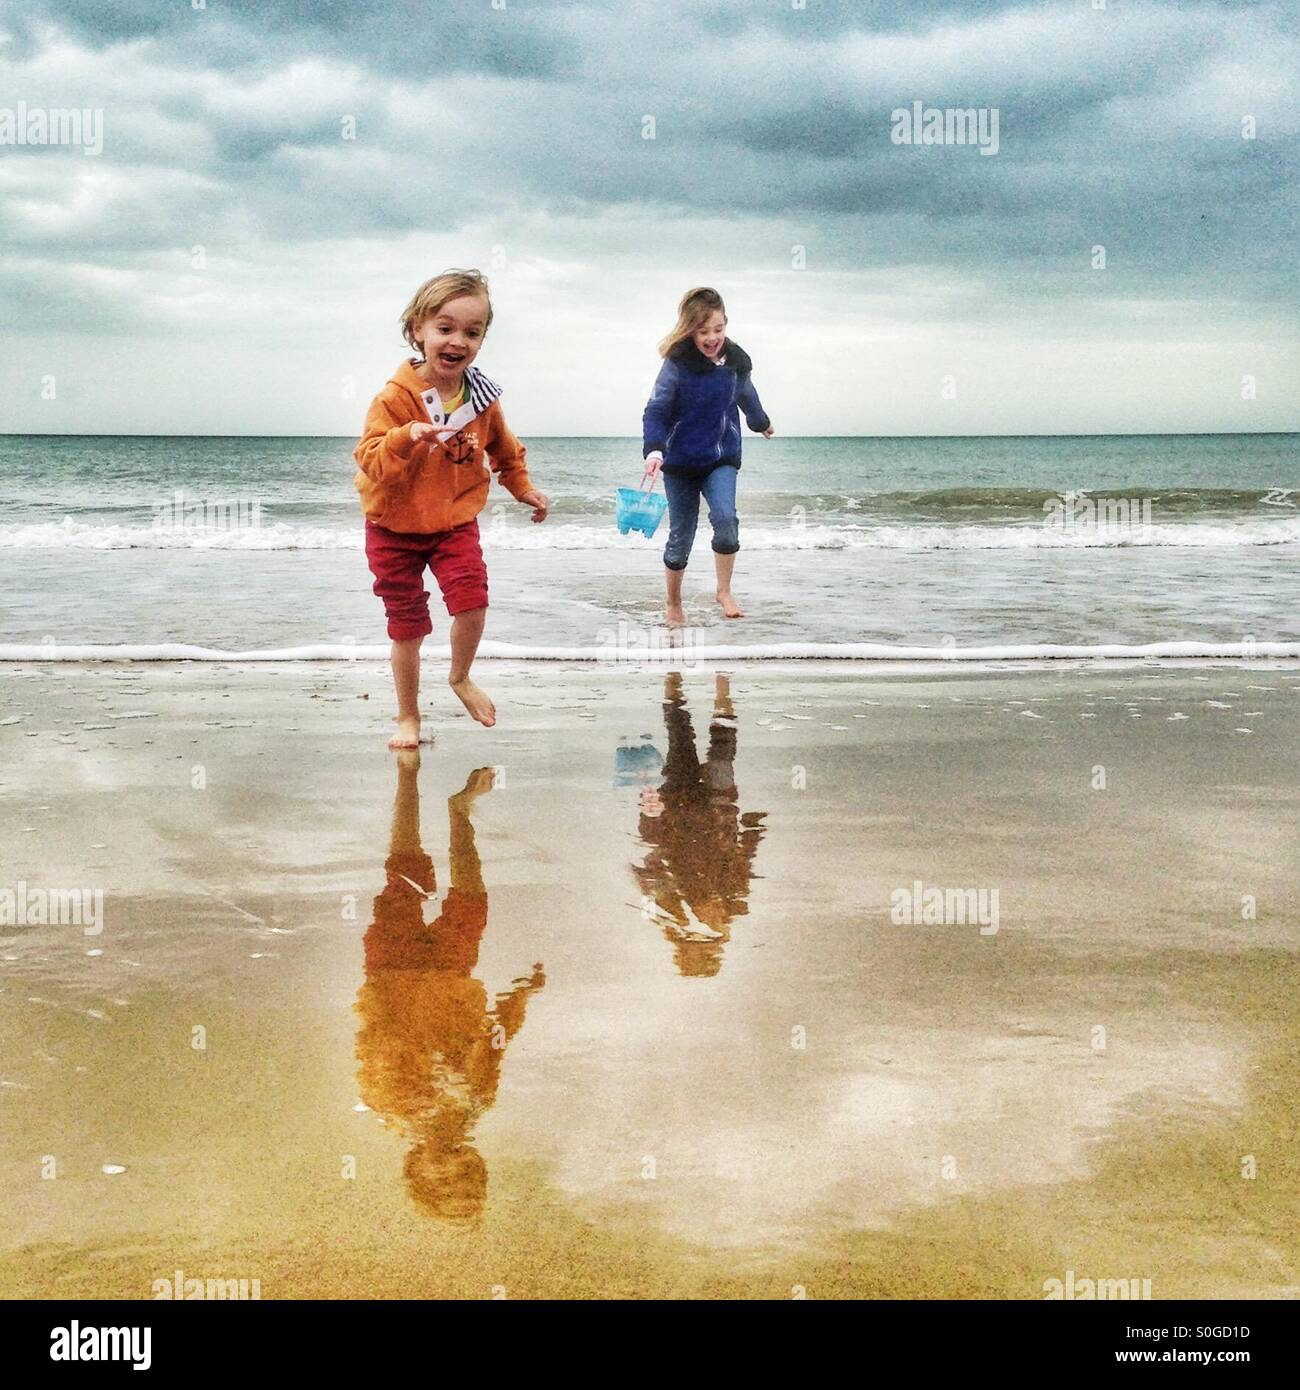 Wave dodging on Bournemouth beach - Stock Image